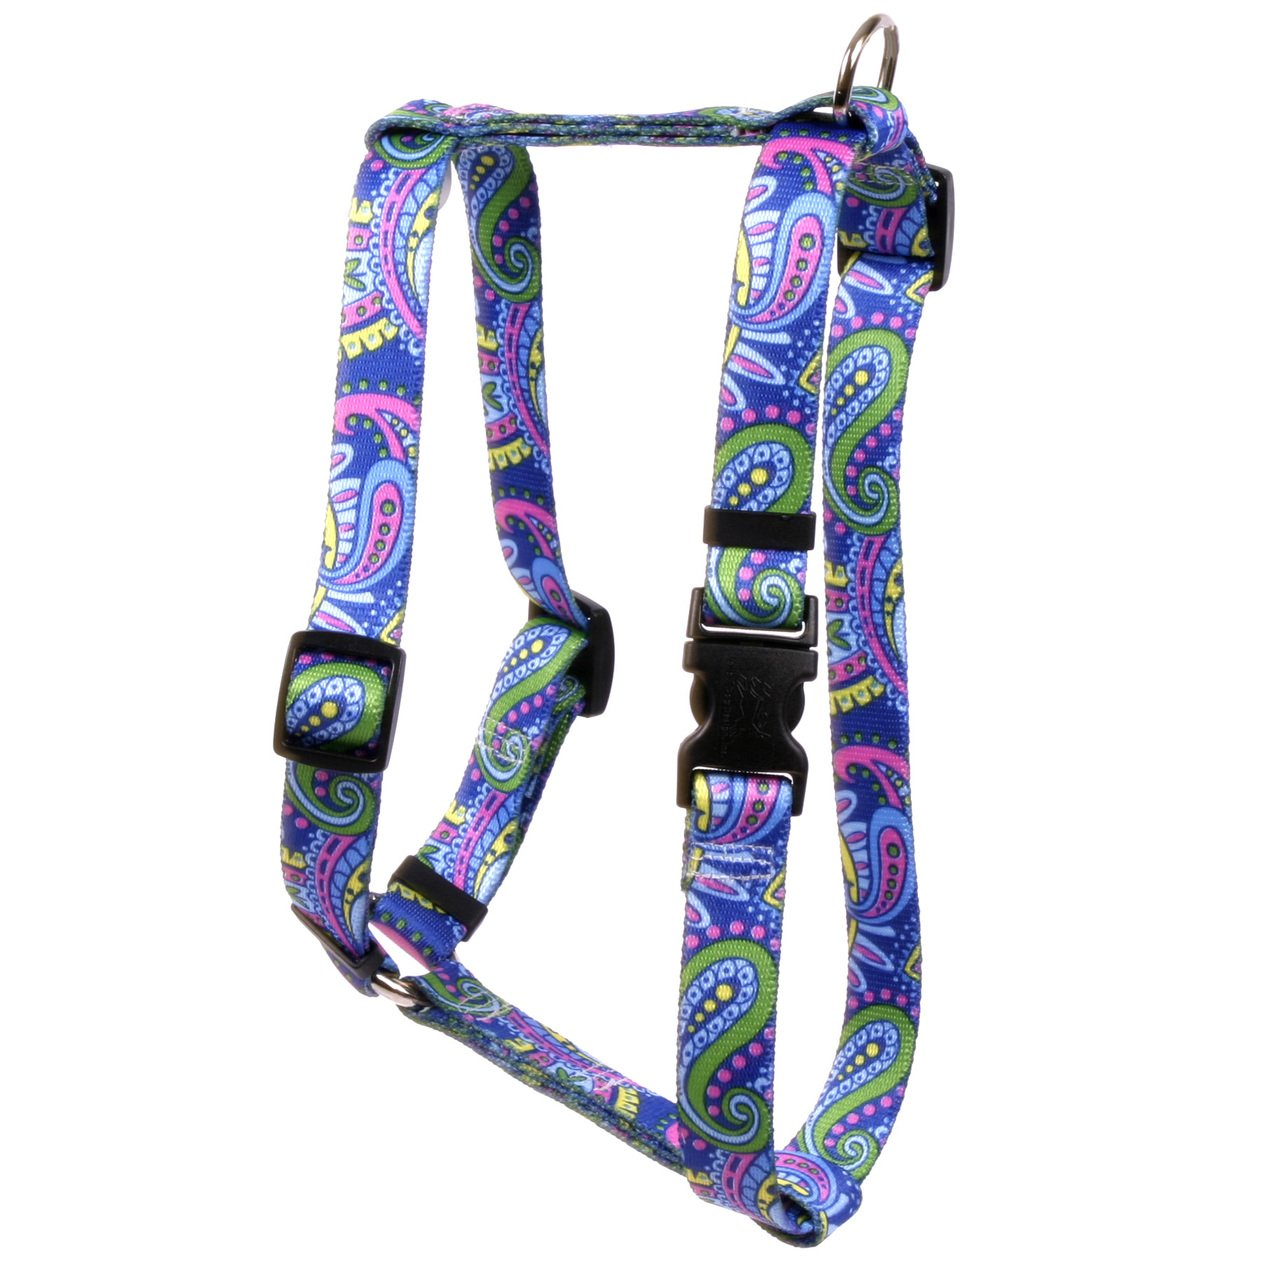 Extra Large 28\ Yellow Dog Design Paisley Power Roman Style H  Dog Harness, X-Large-1  Wide and fits Chest of 28 to 36